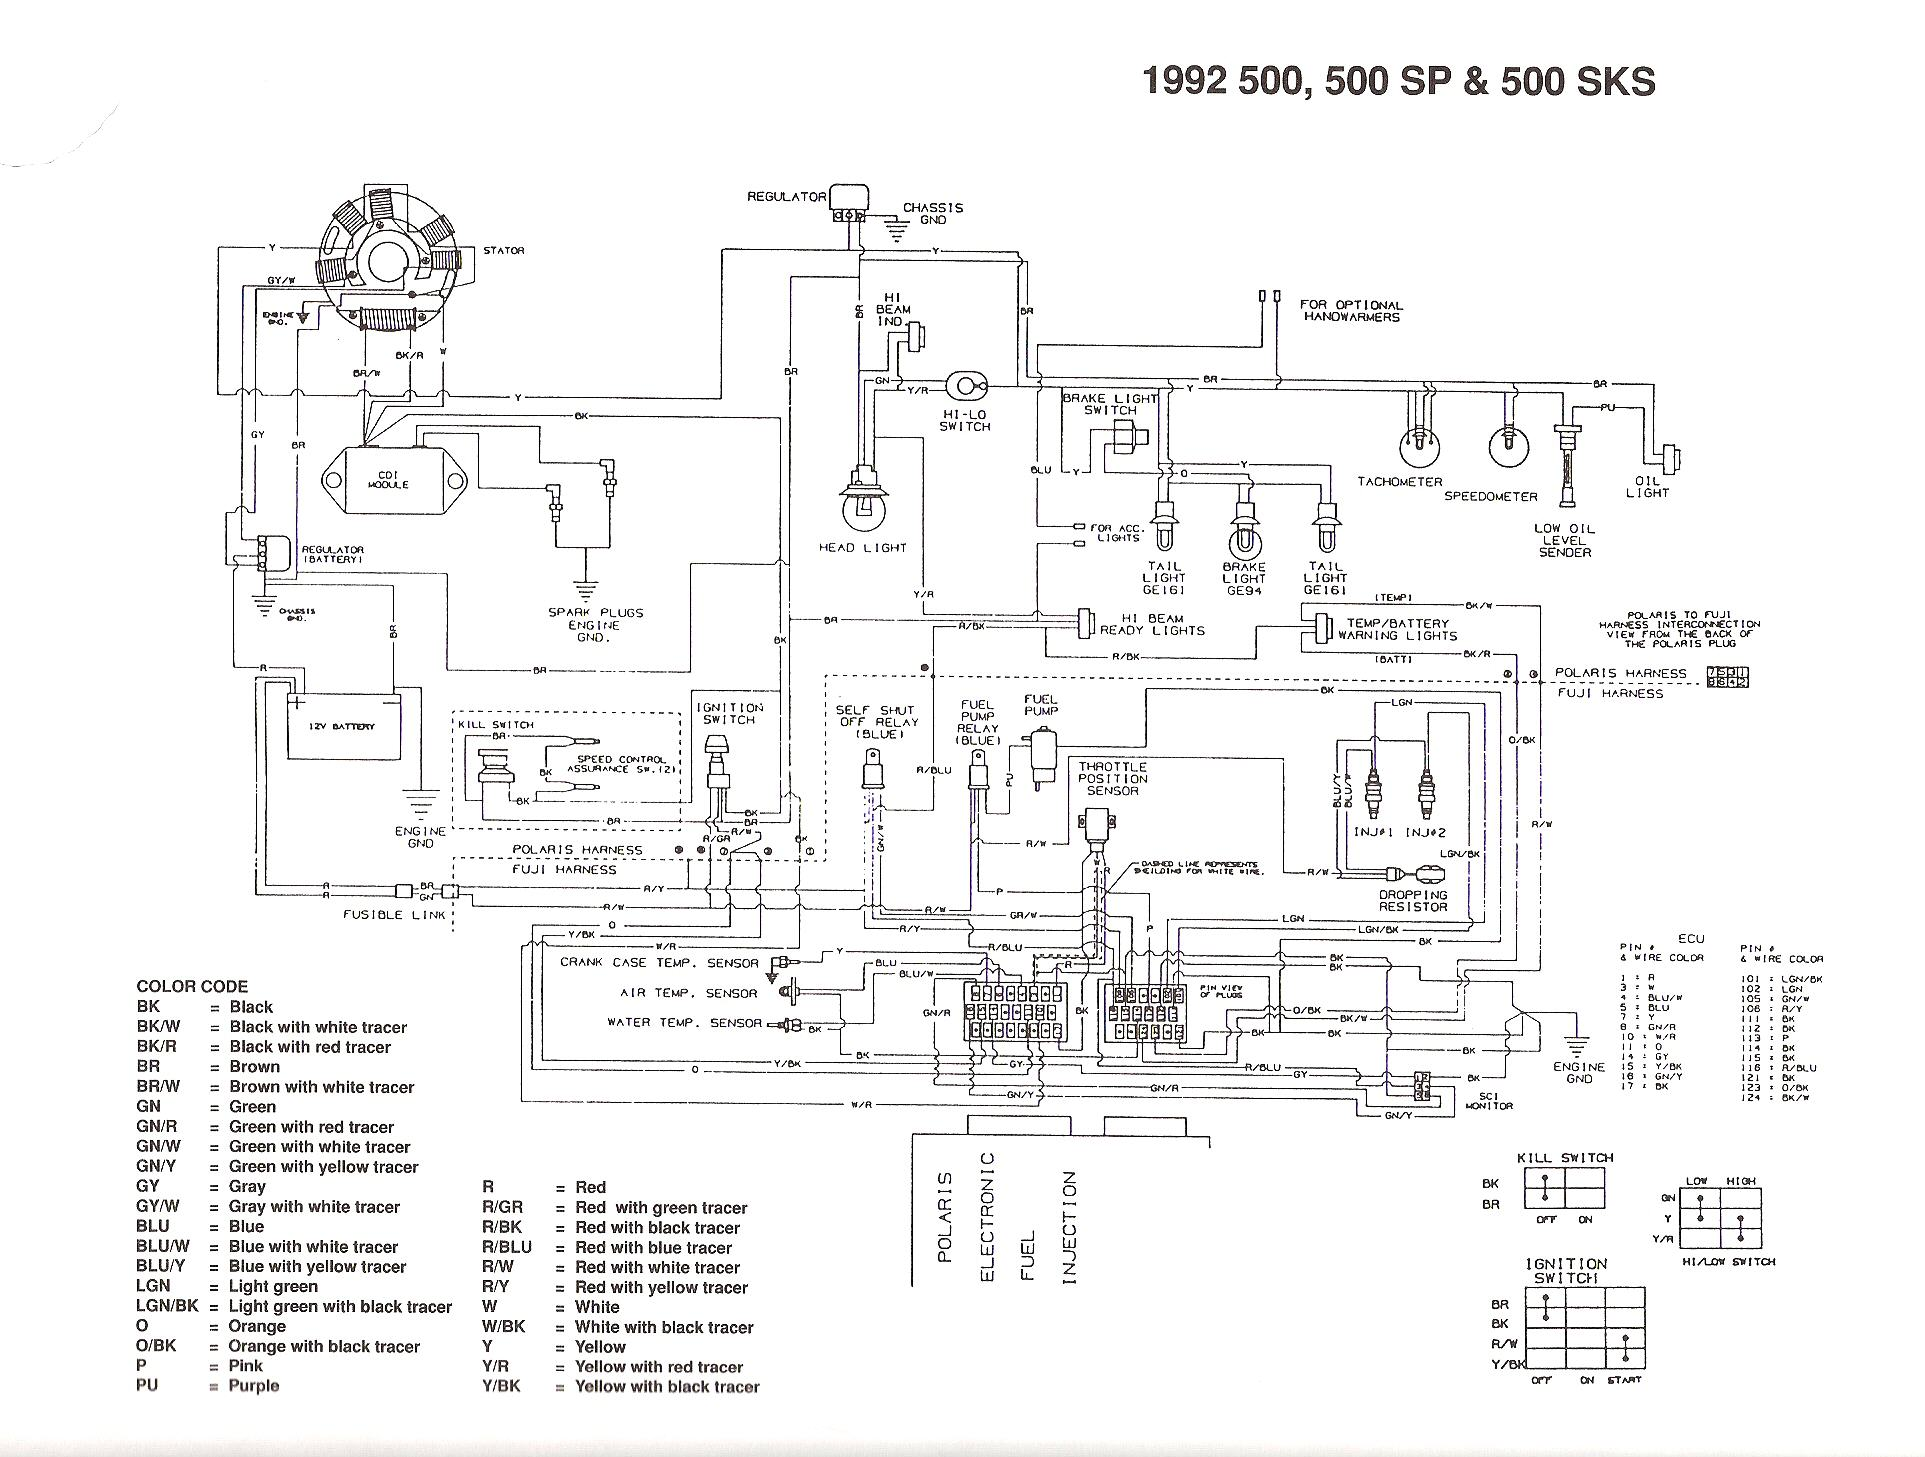 2003 polaris sportsman 500 wiring diagram